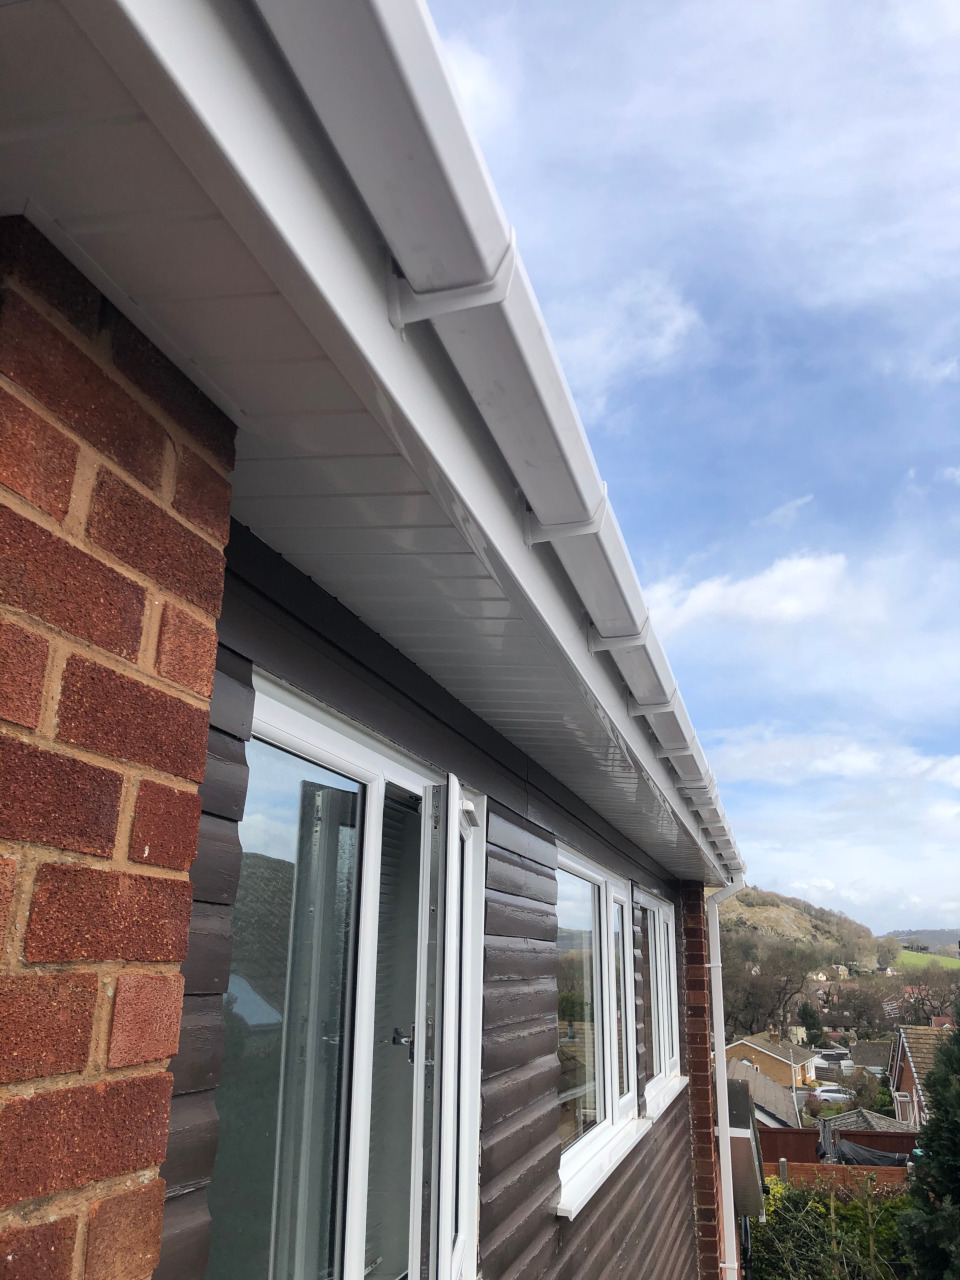 uPVC fascias and gutter replacements.